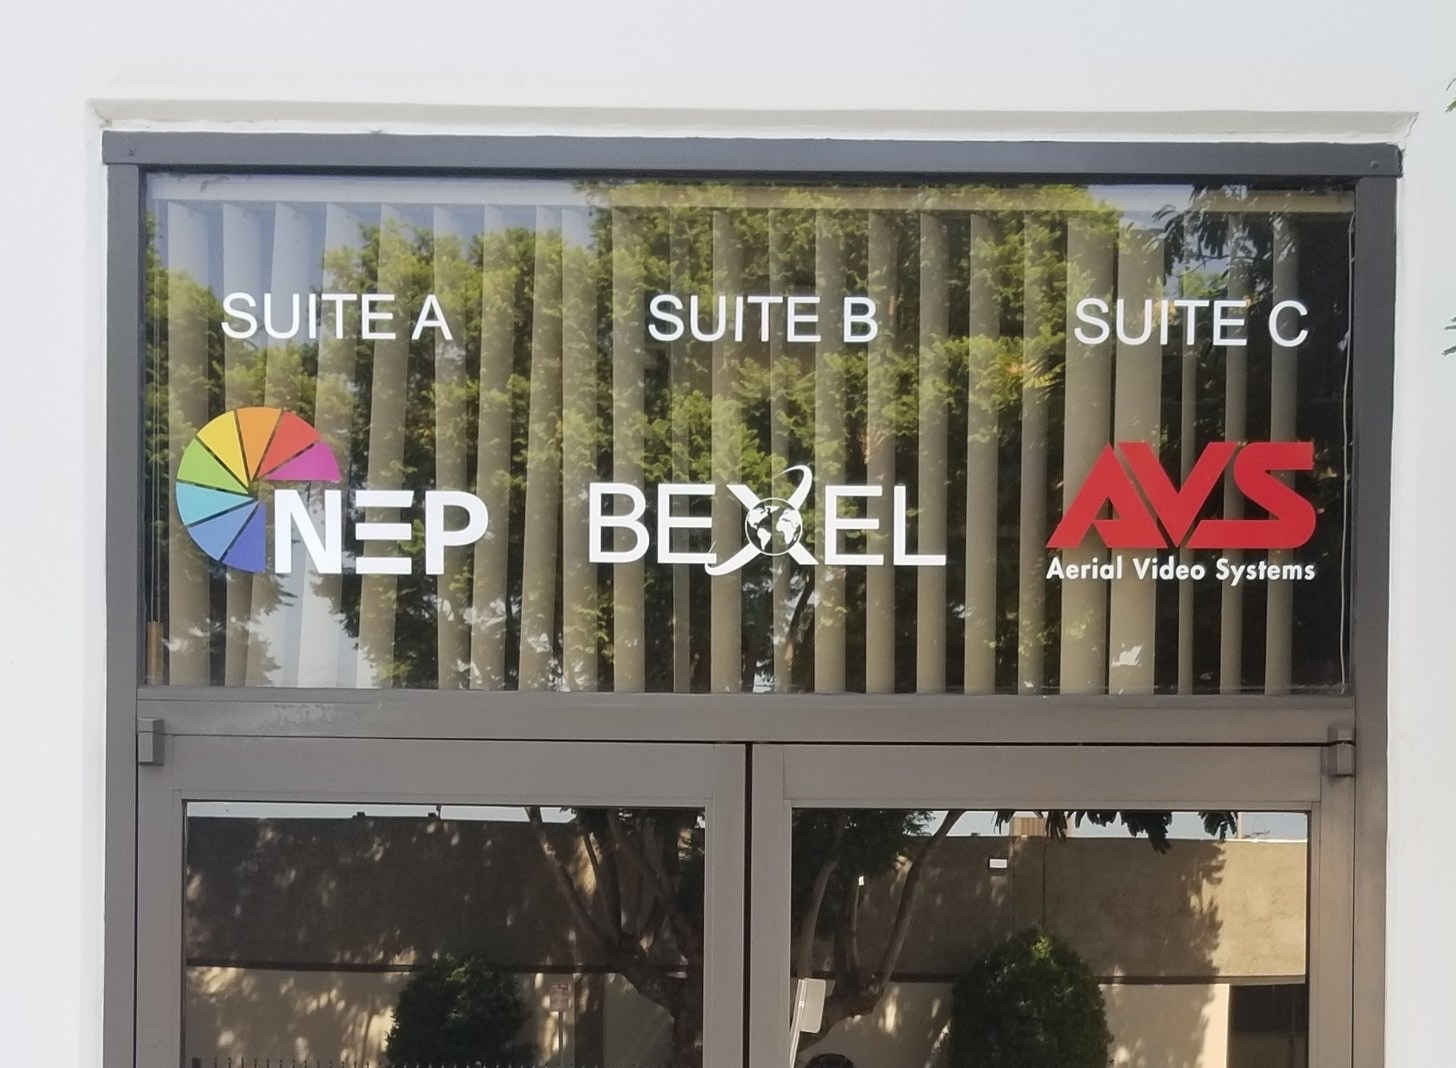 Bexel had additions for their storefront window graphics, which we provided. Now the display for their San Fernando Valley branch is updated.